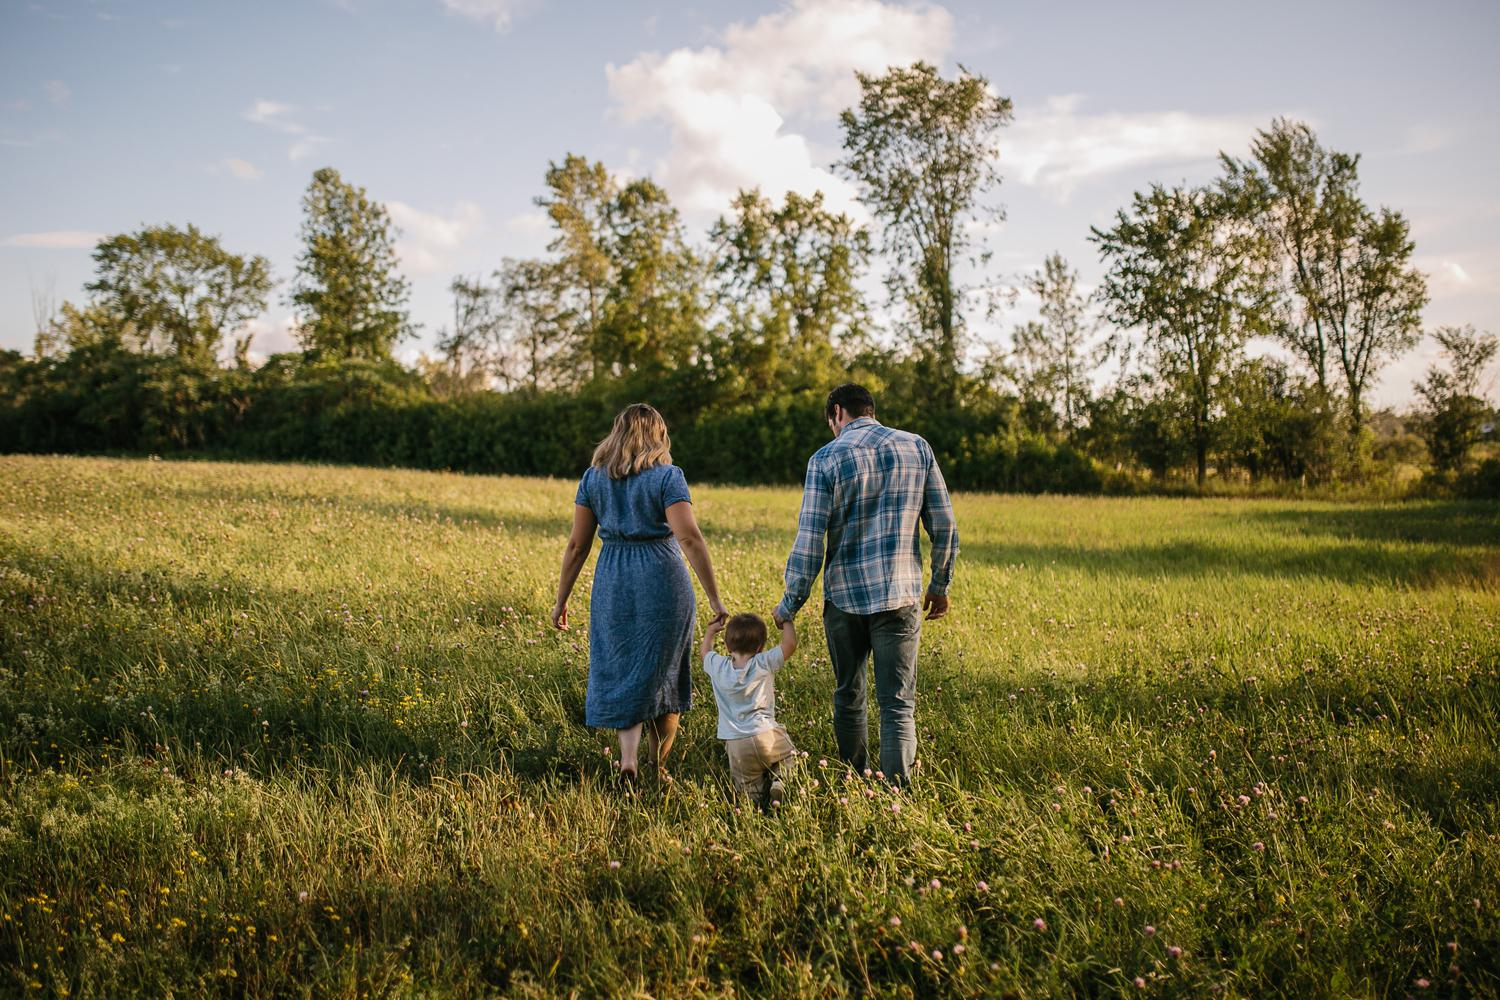 perth lanark county family outdoor photographer - kerry ford photography-043.jpg